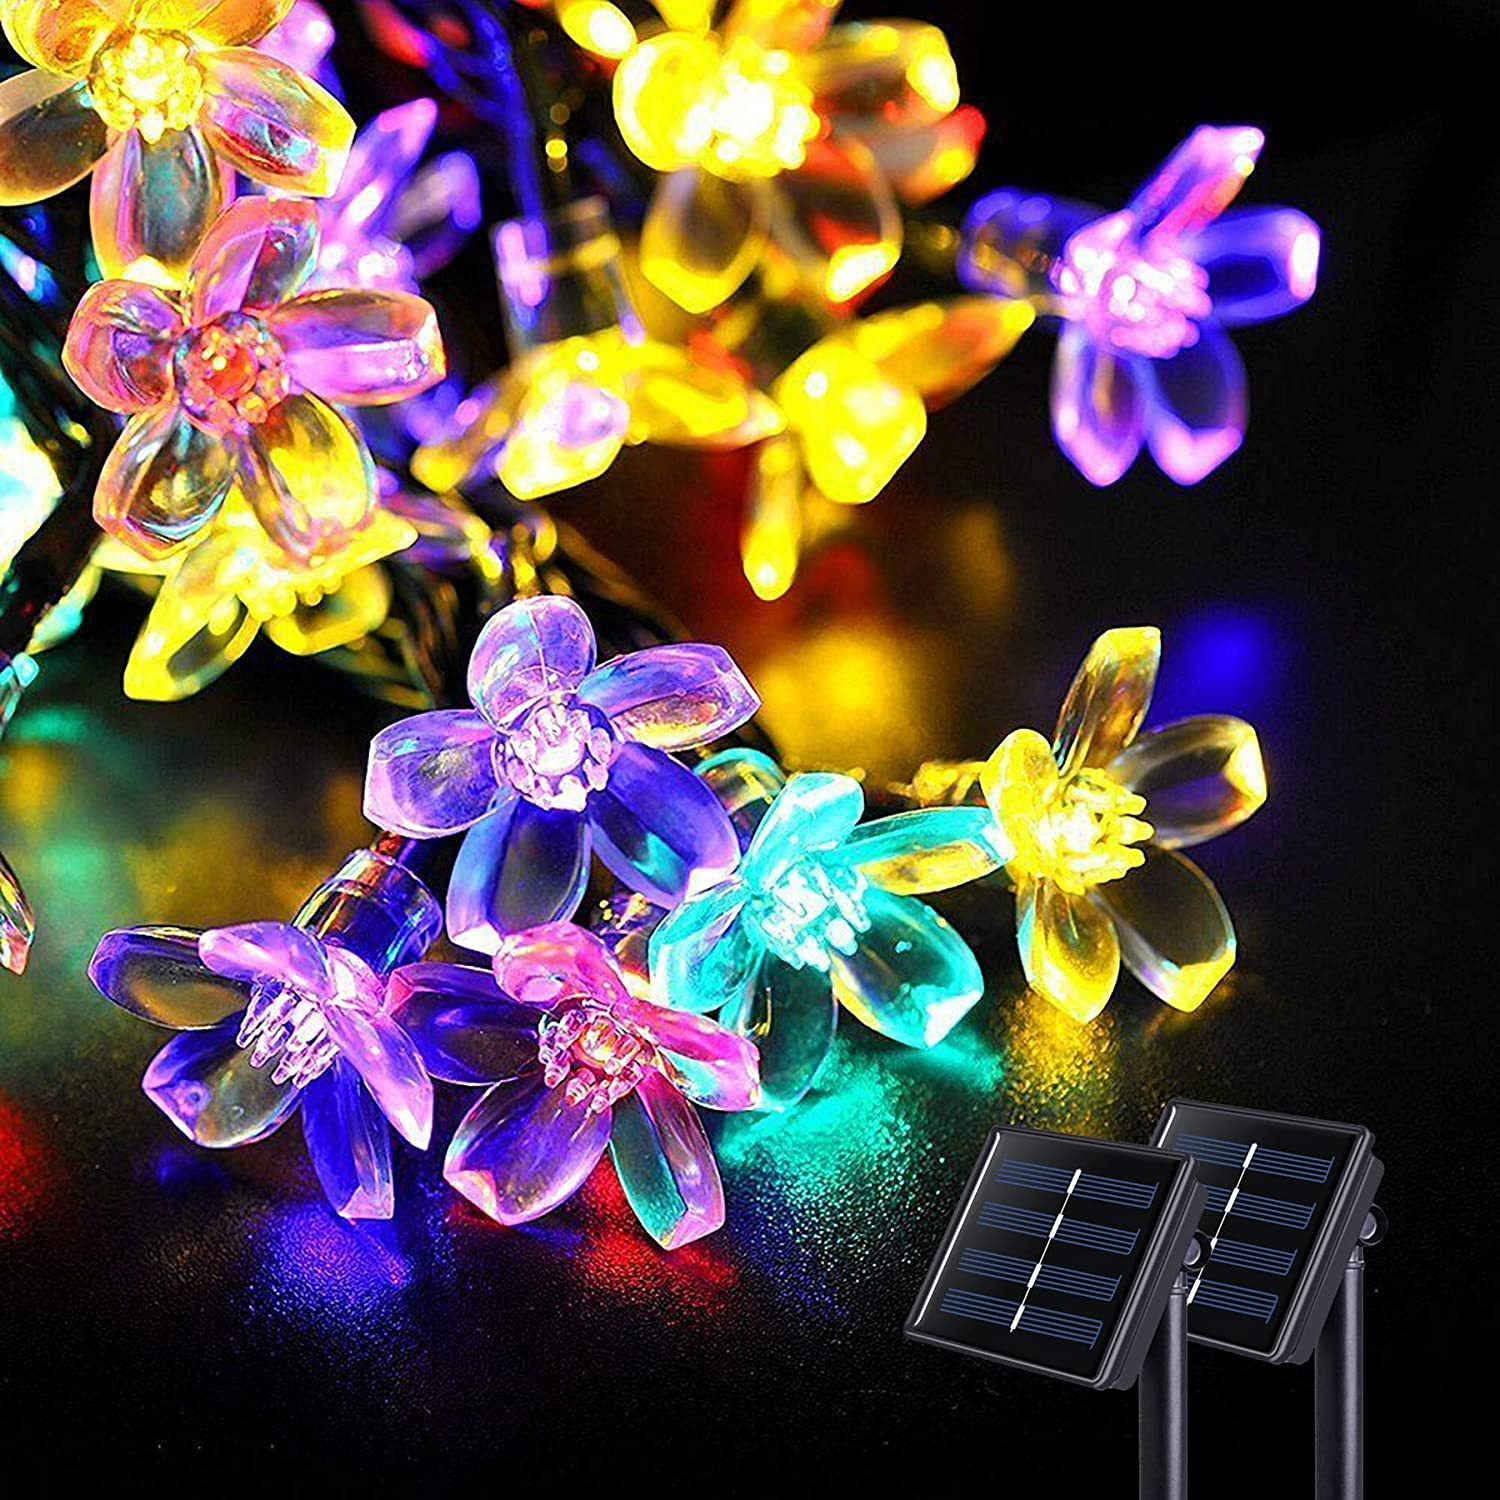 JMEXSUSS Solar Flower String Lights, 2 Pack 30.6FT 50LED Cherry Blossoms String Lights Outdoor Waterproof, Solar Fairy Light for Garden Decorations,Yard,Lawn,Tree,Holiday,Party,Spring